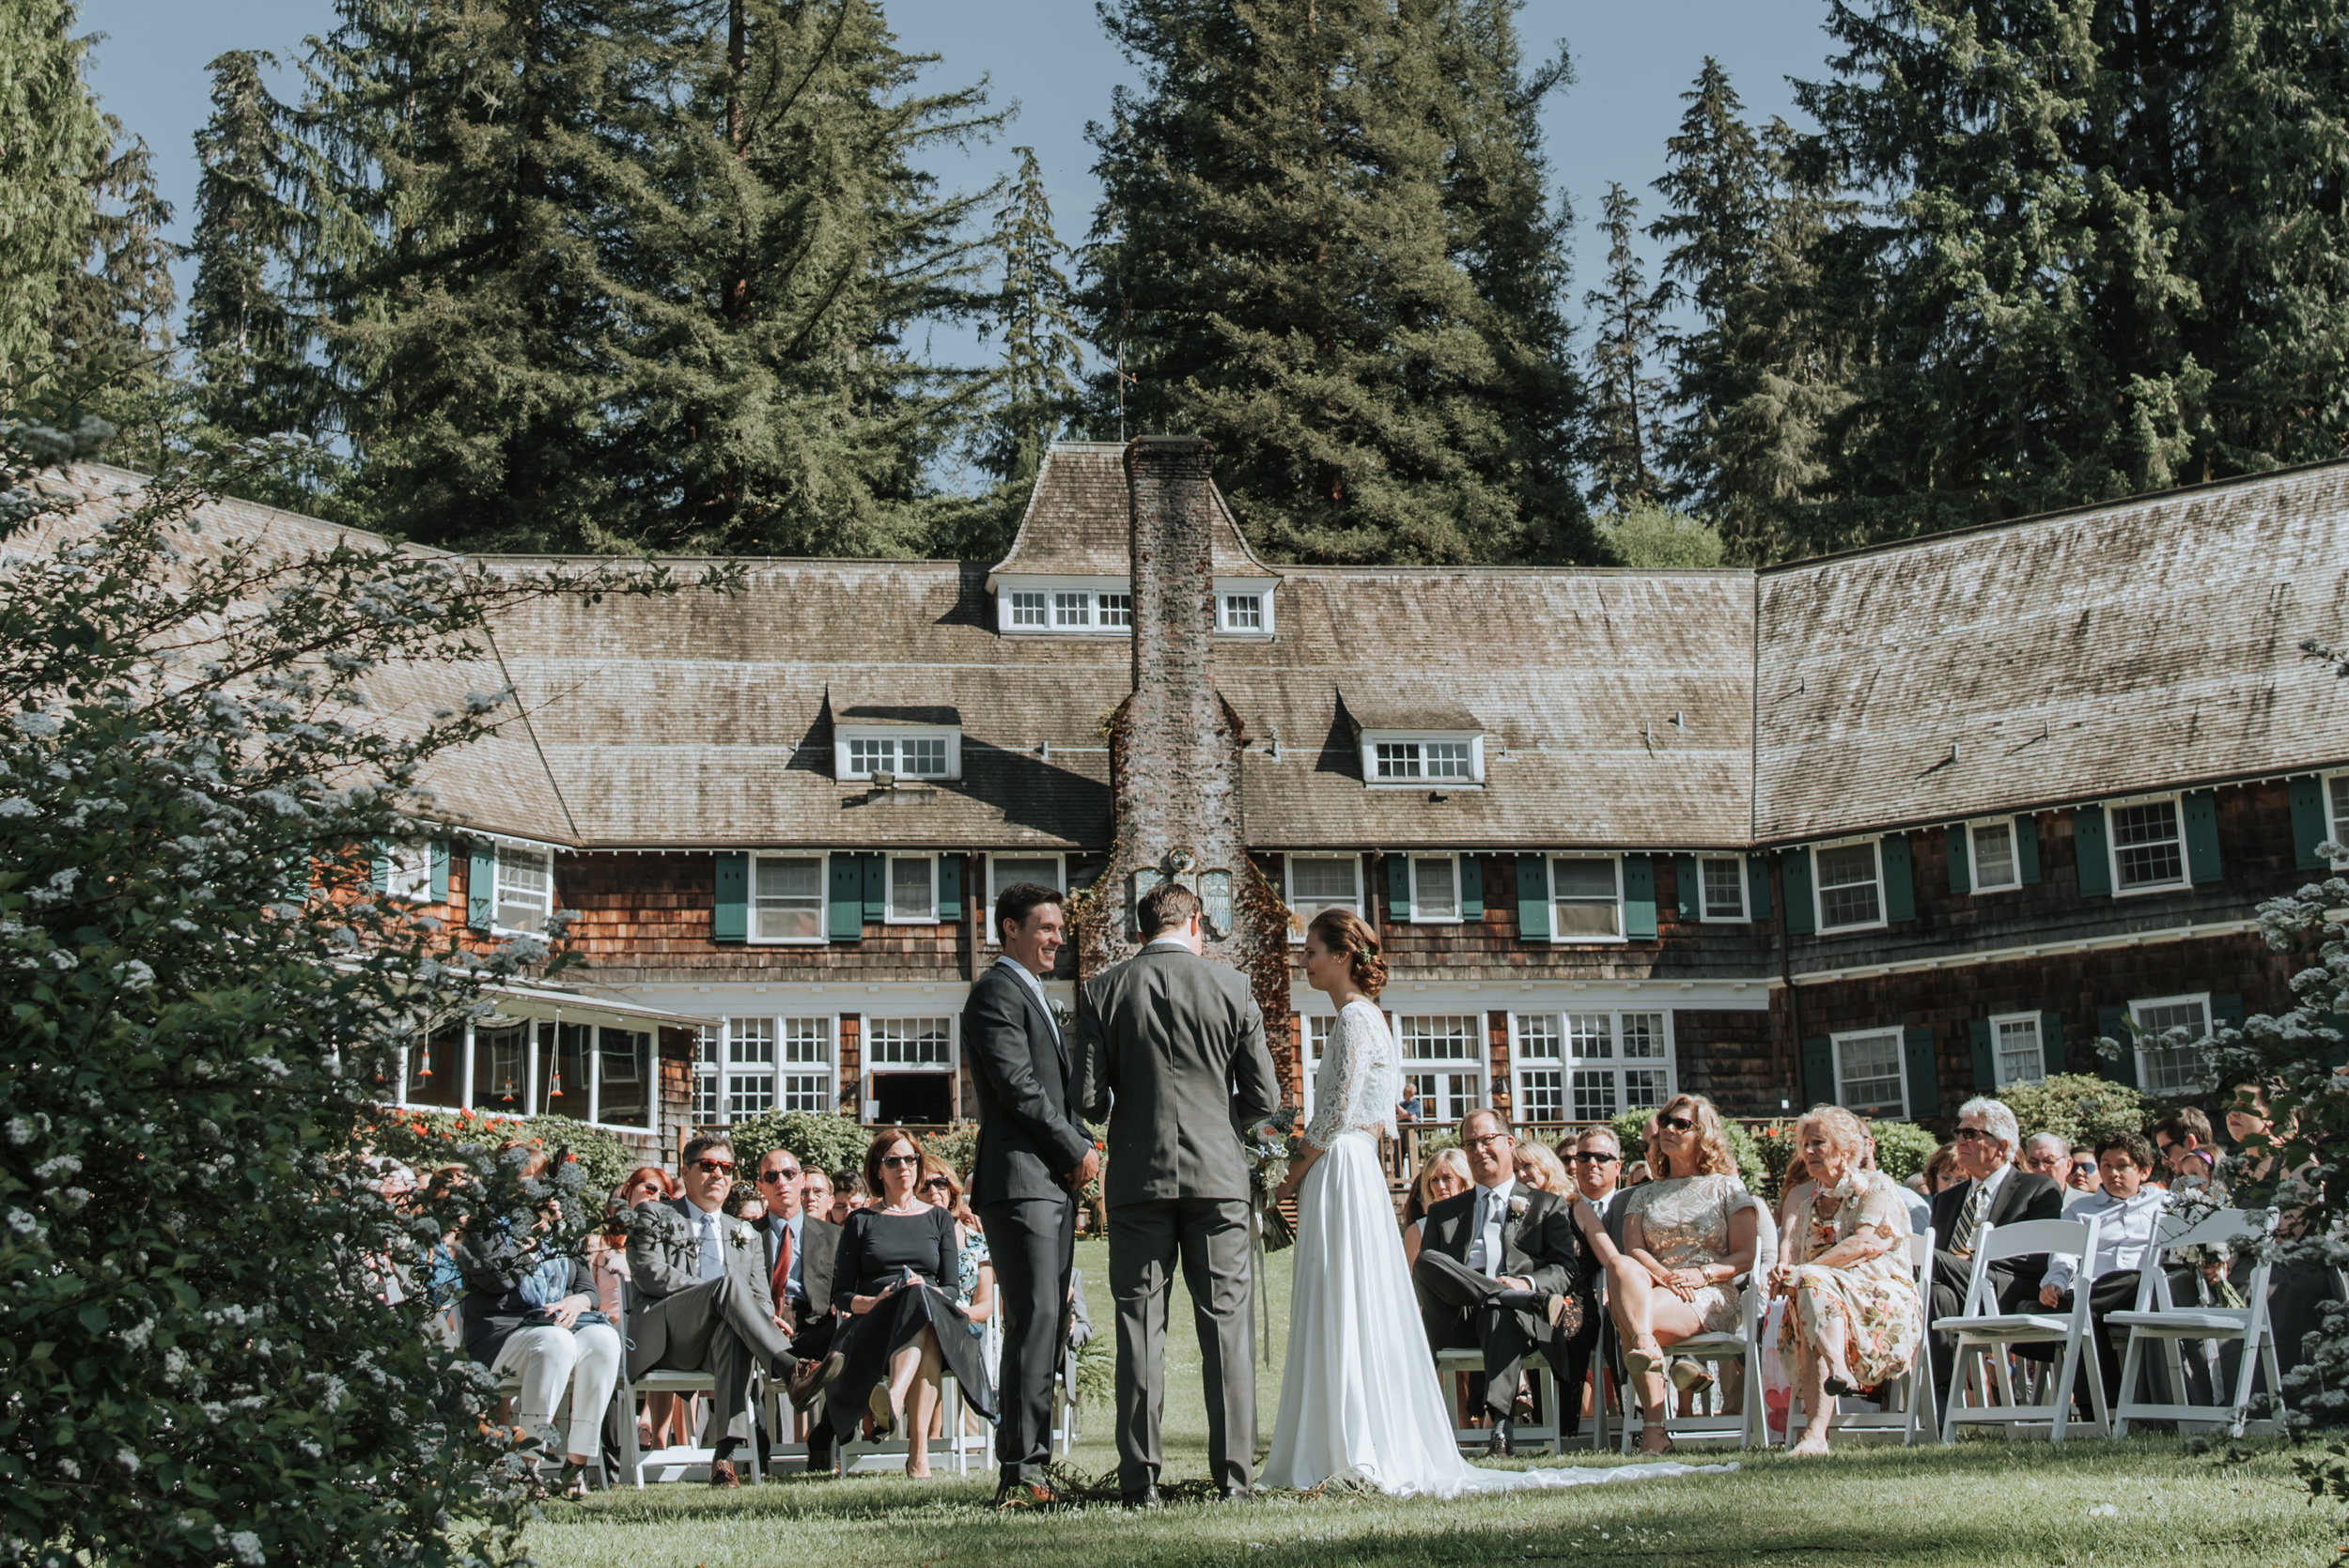 Elizabeth & Conor : Elizabeth describes her vision for a laid back wedding weekend for friends and family to enjoy the great outdoors in her home state of Washington.  Read More .